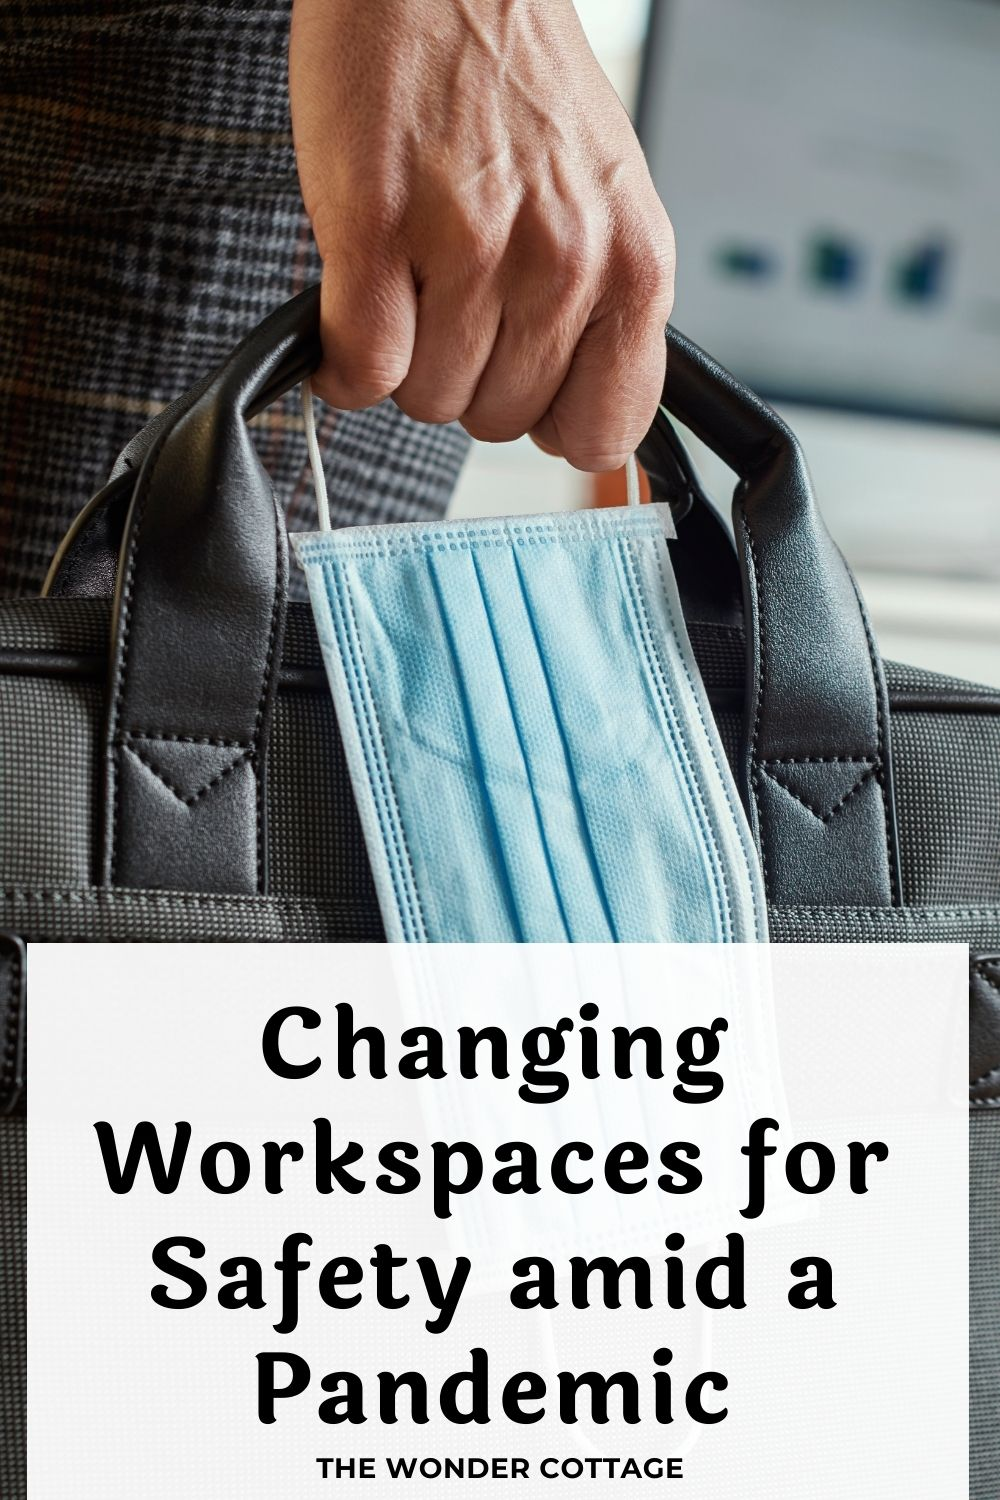 Changing Workspaces for Safety amid a Pandemic